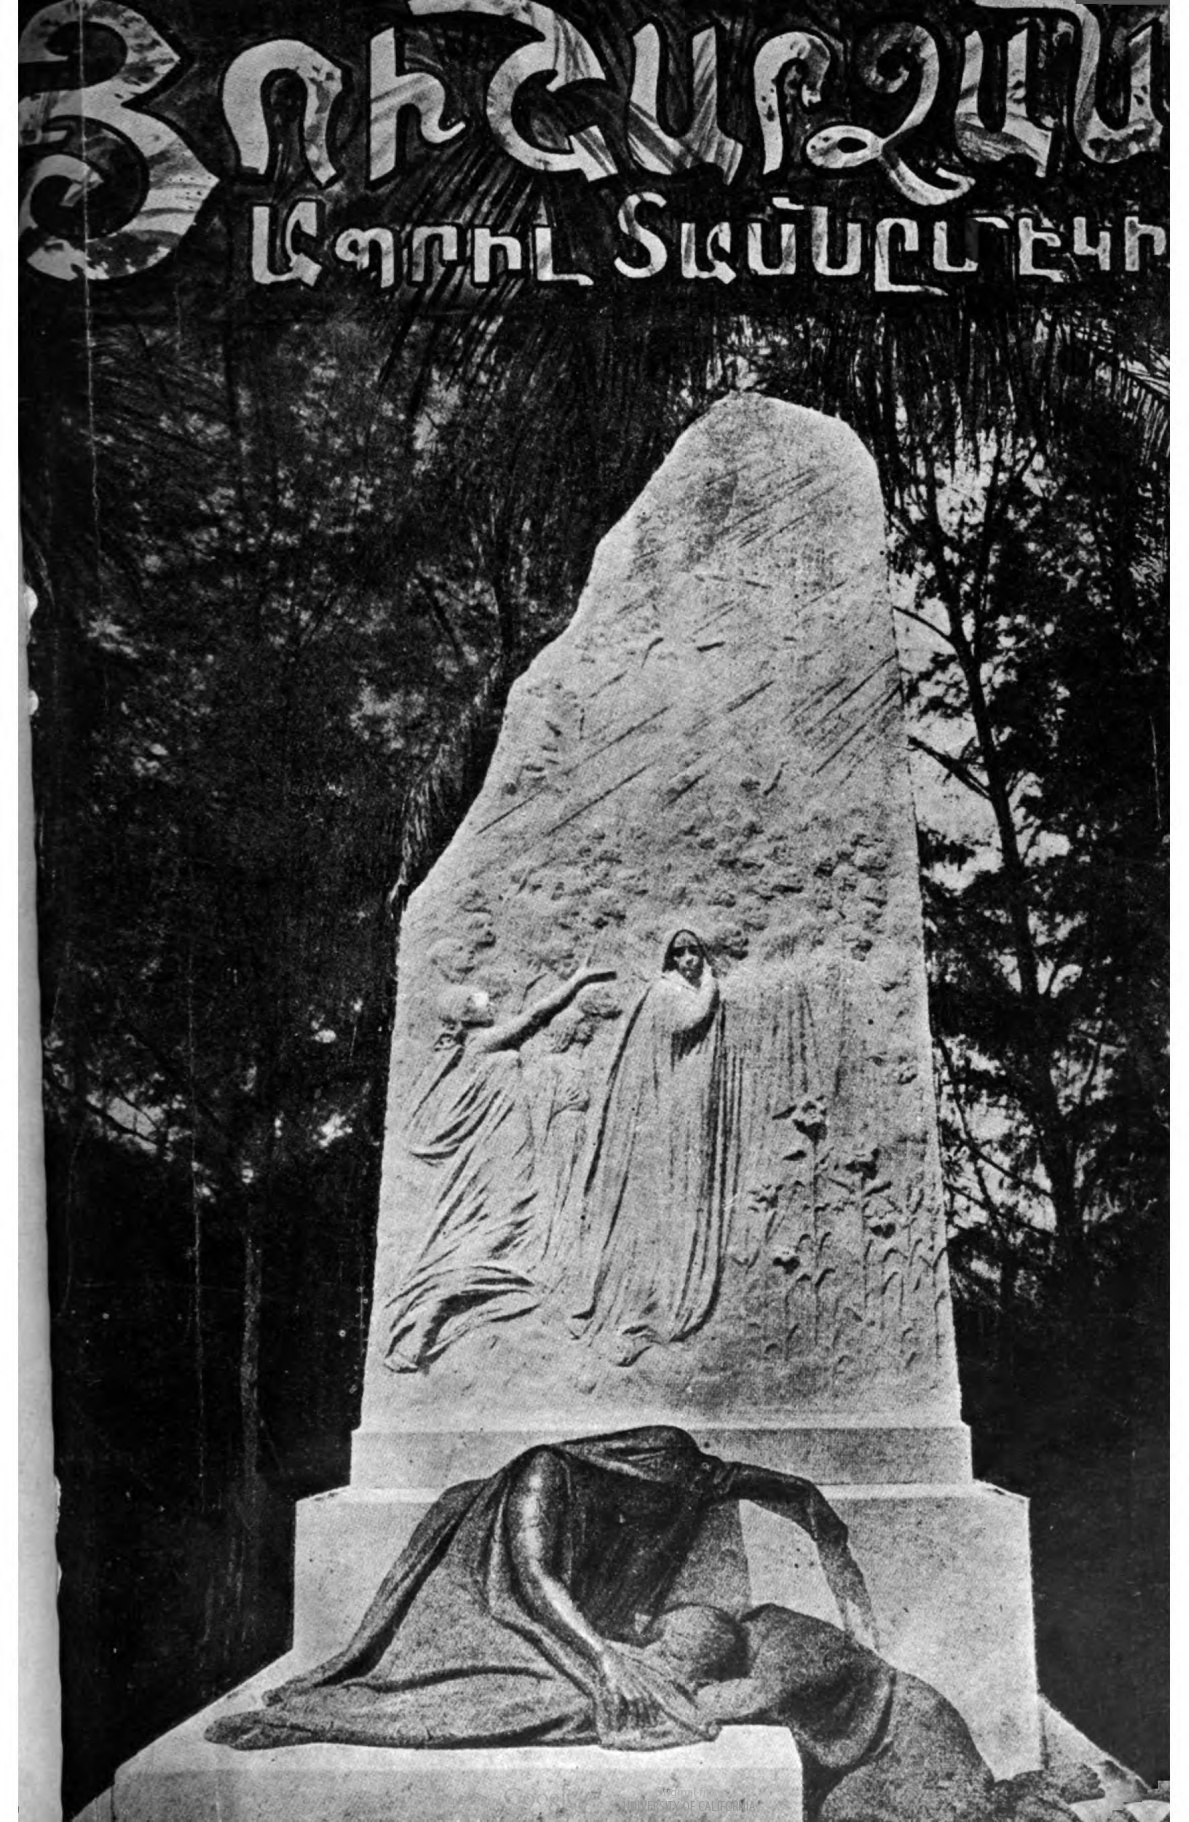 """The first monument to commemorate """"the 11th of April"""" (using the old Julian calendar, which is the 24th by the modern Gregorian calendar) set up in 1919 in the Pangaltı Armenian Cemetery of Istanbul, now covered by Taksim Square."""